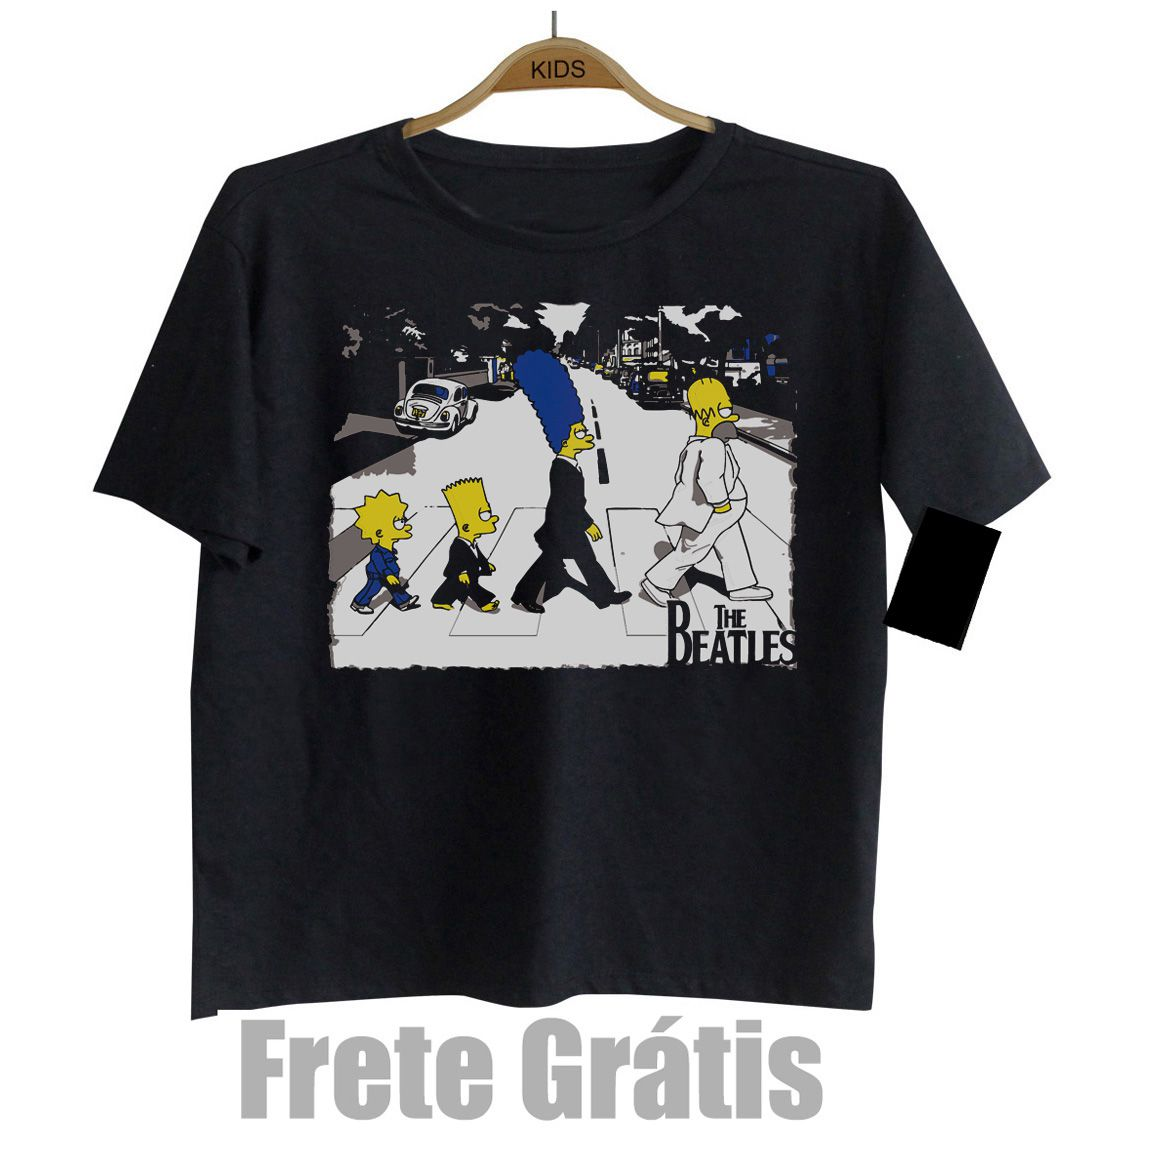 Camiseta Infantil Rock - The Beatles Simpsons  - Black  - Baby Monster S/A